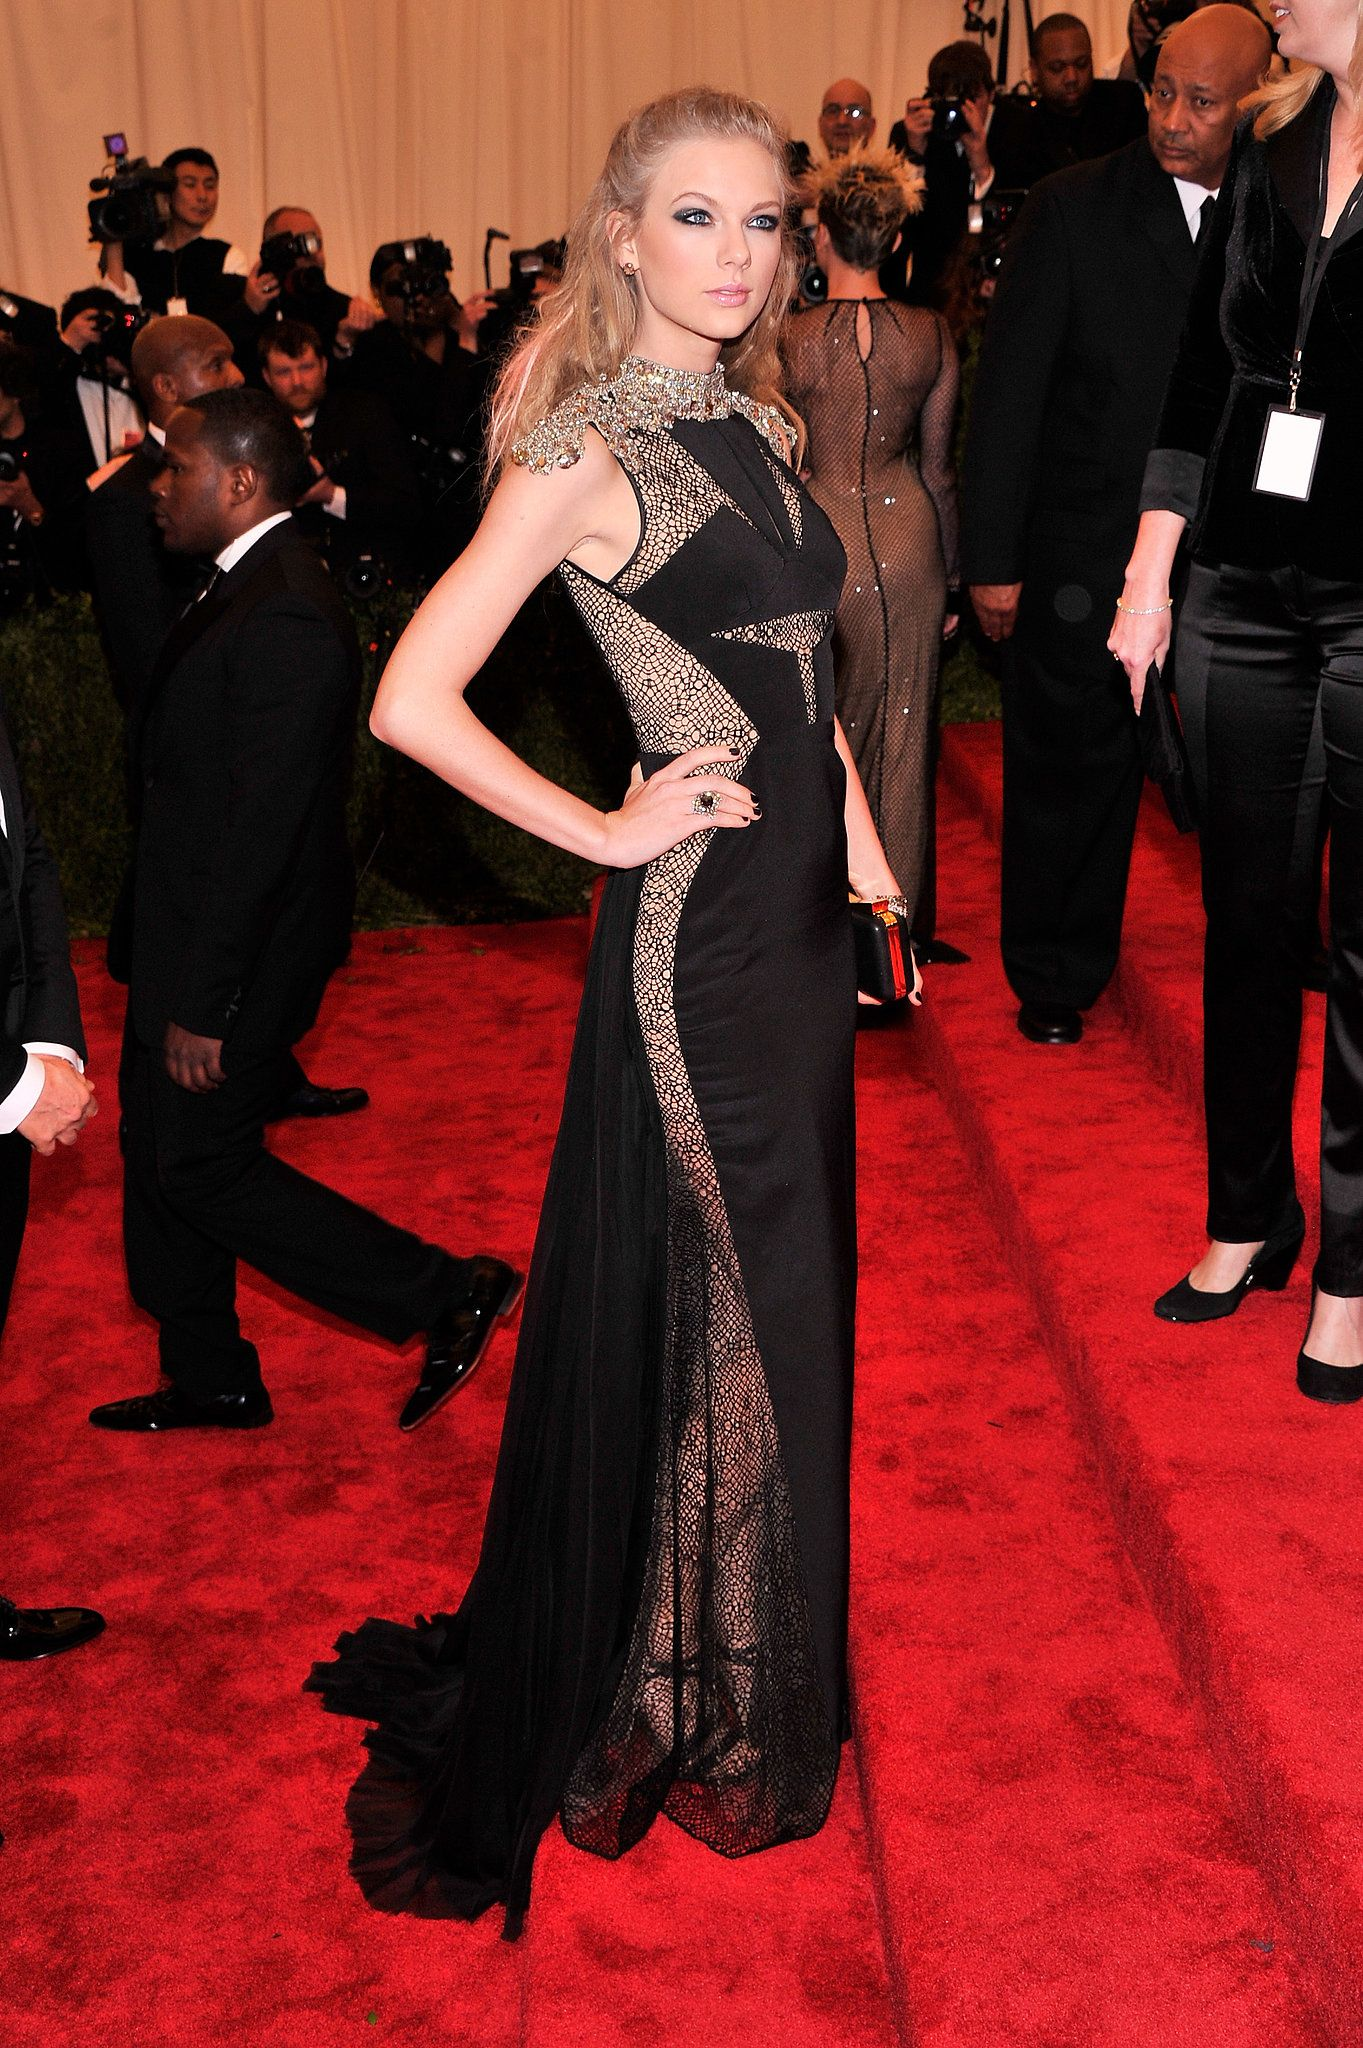 Taylor Swift At The Met Gala 2013 All The Ladies On The Met Gala Red Carpet Met Gala Red Carpet Met Gala Looks Met Gala